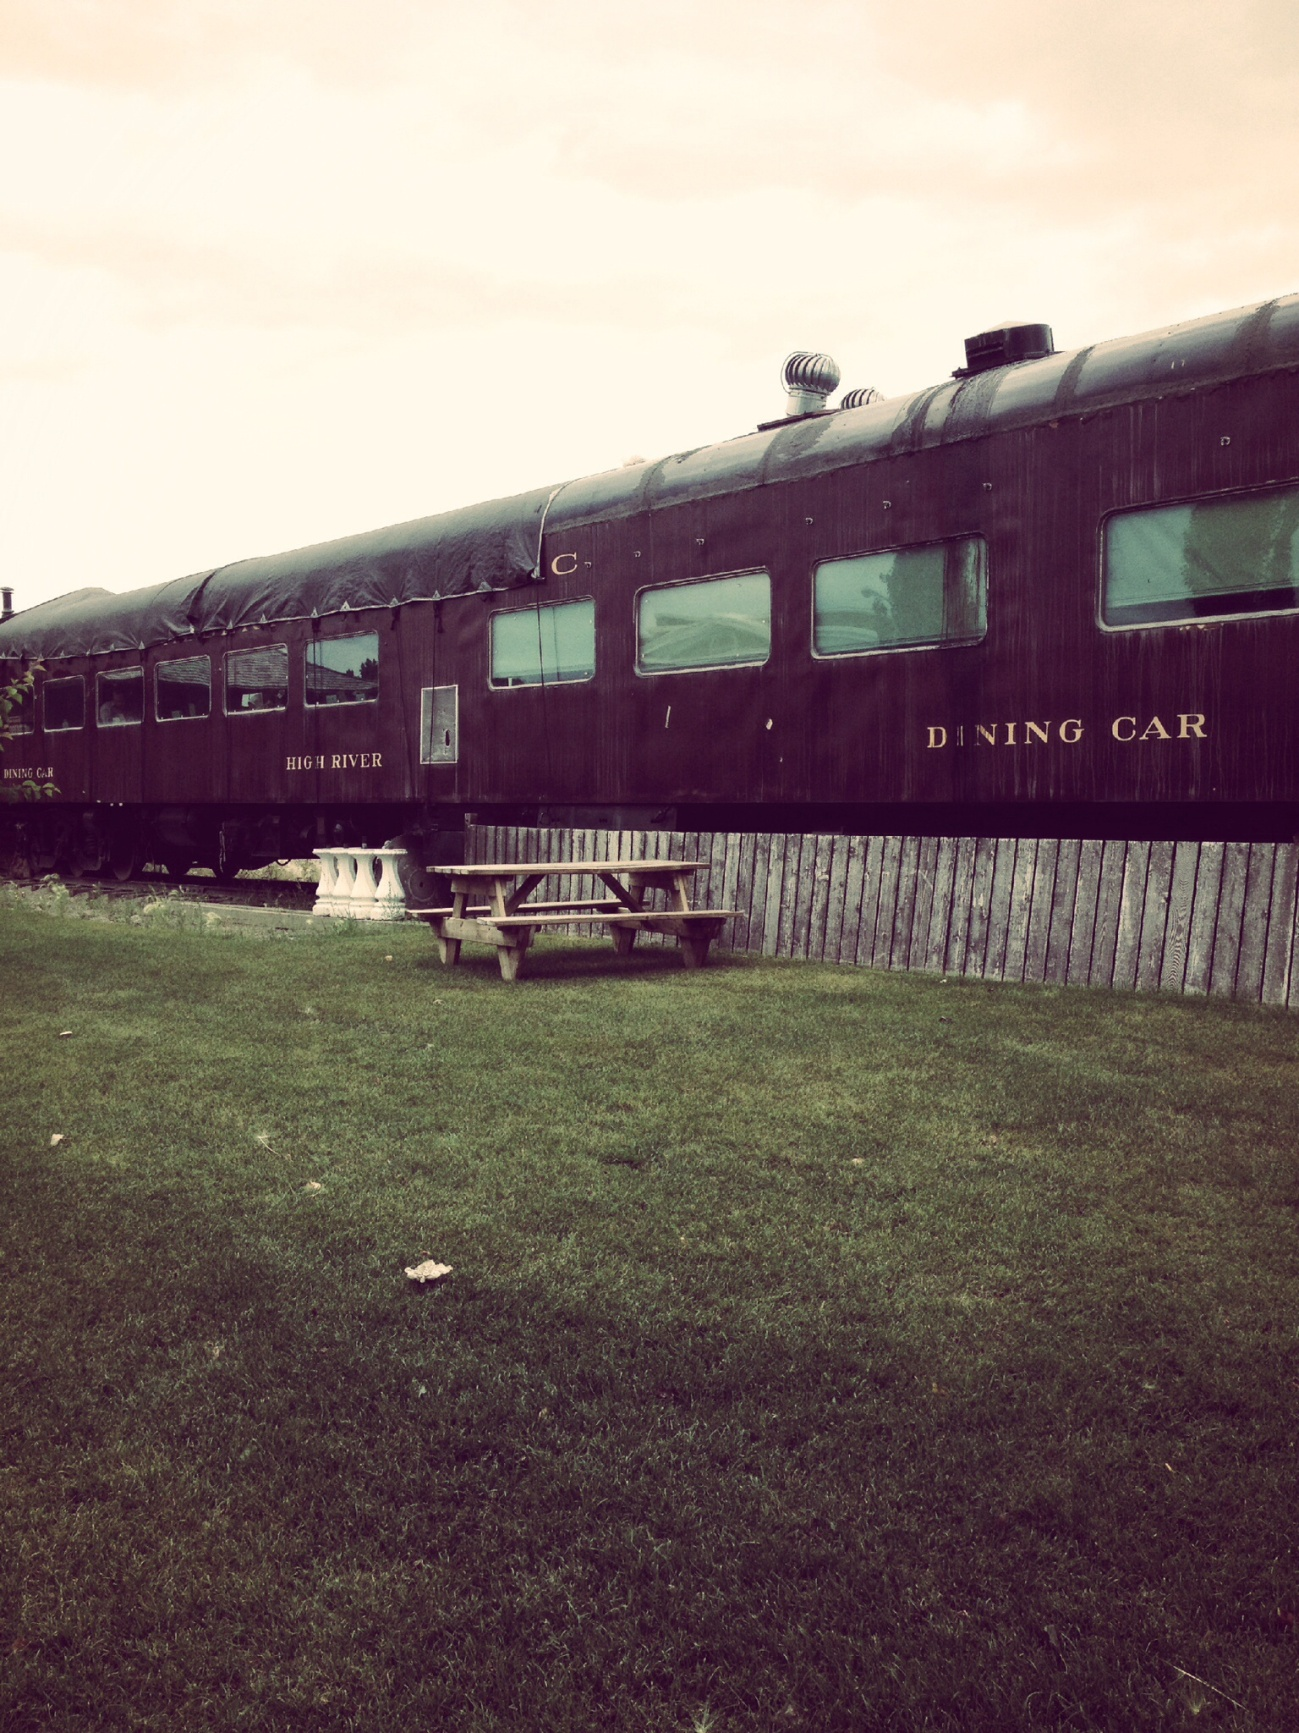 The dining car in High River survived the flood